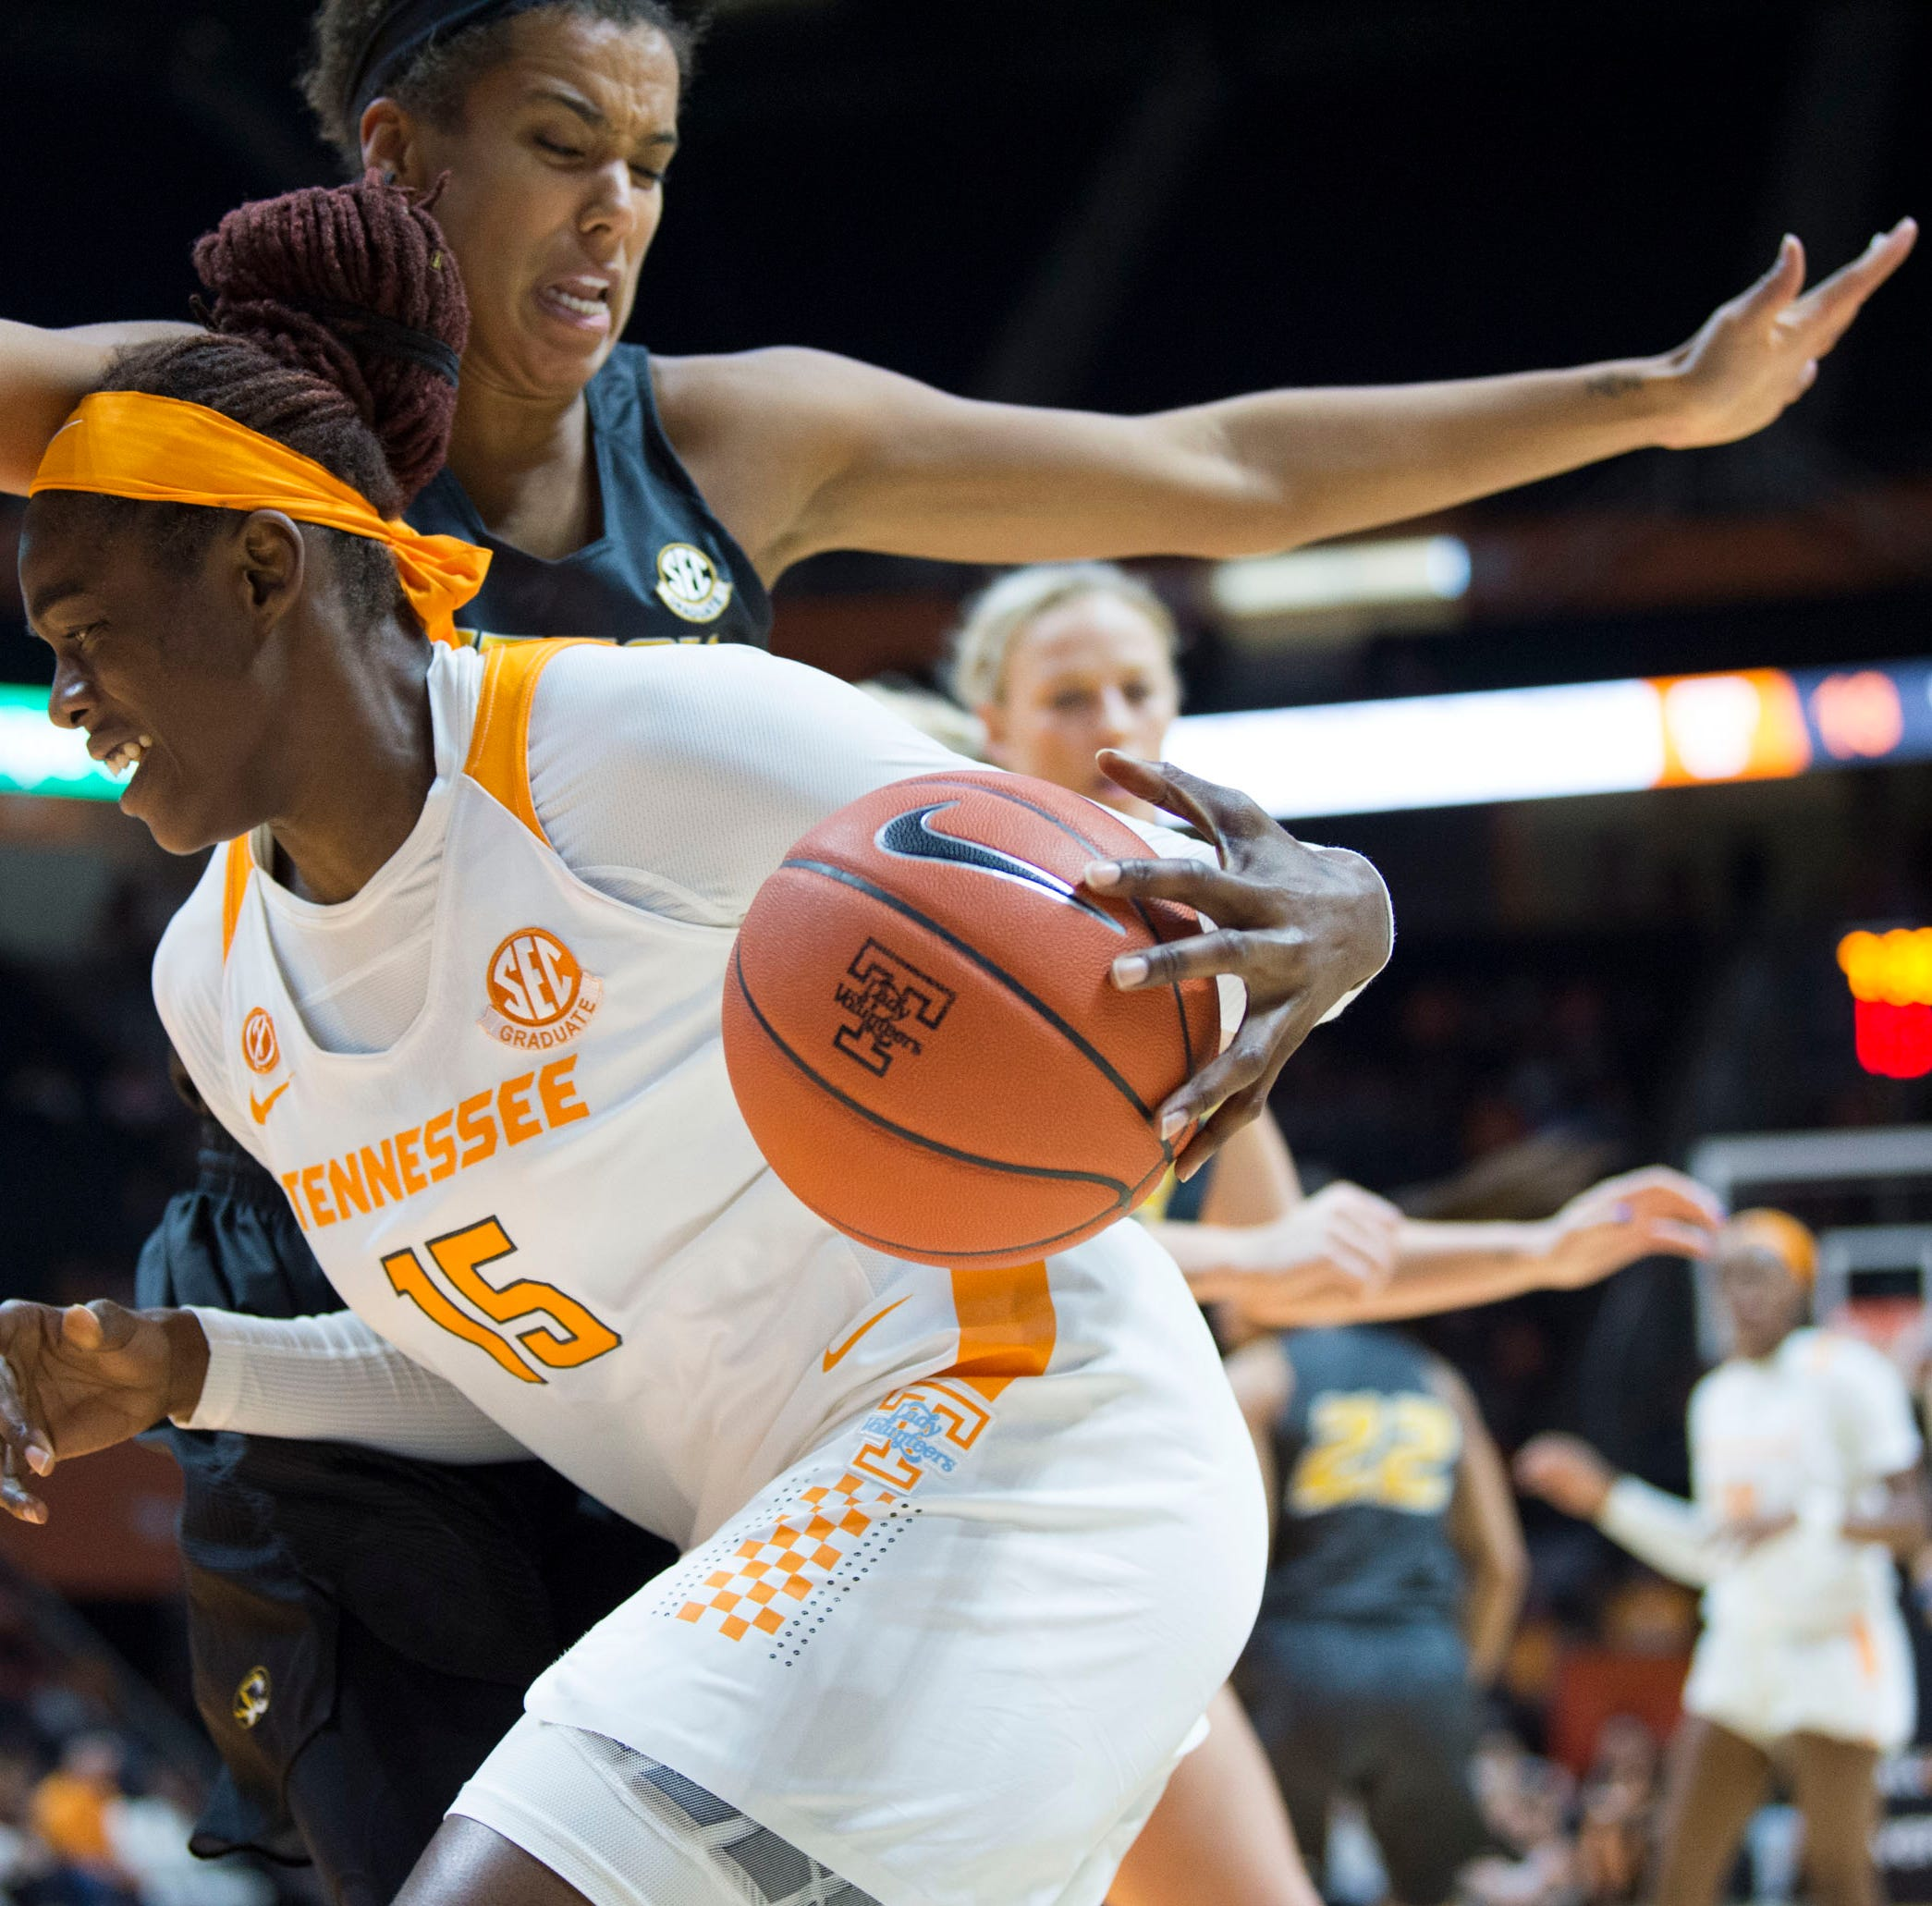 UT Lady Vols fall to Kentucky, suffer second consecutive home loss